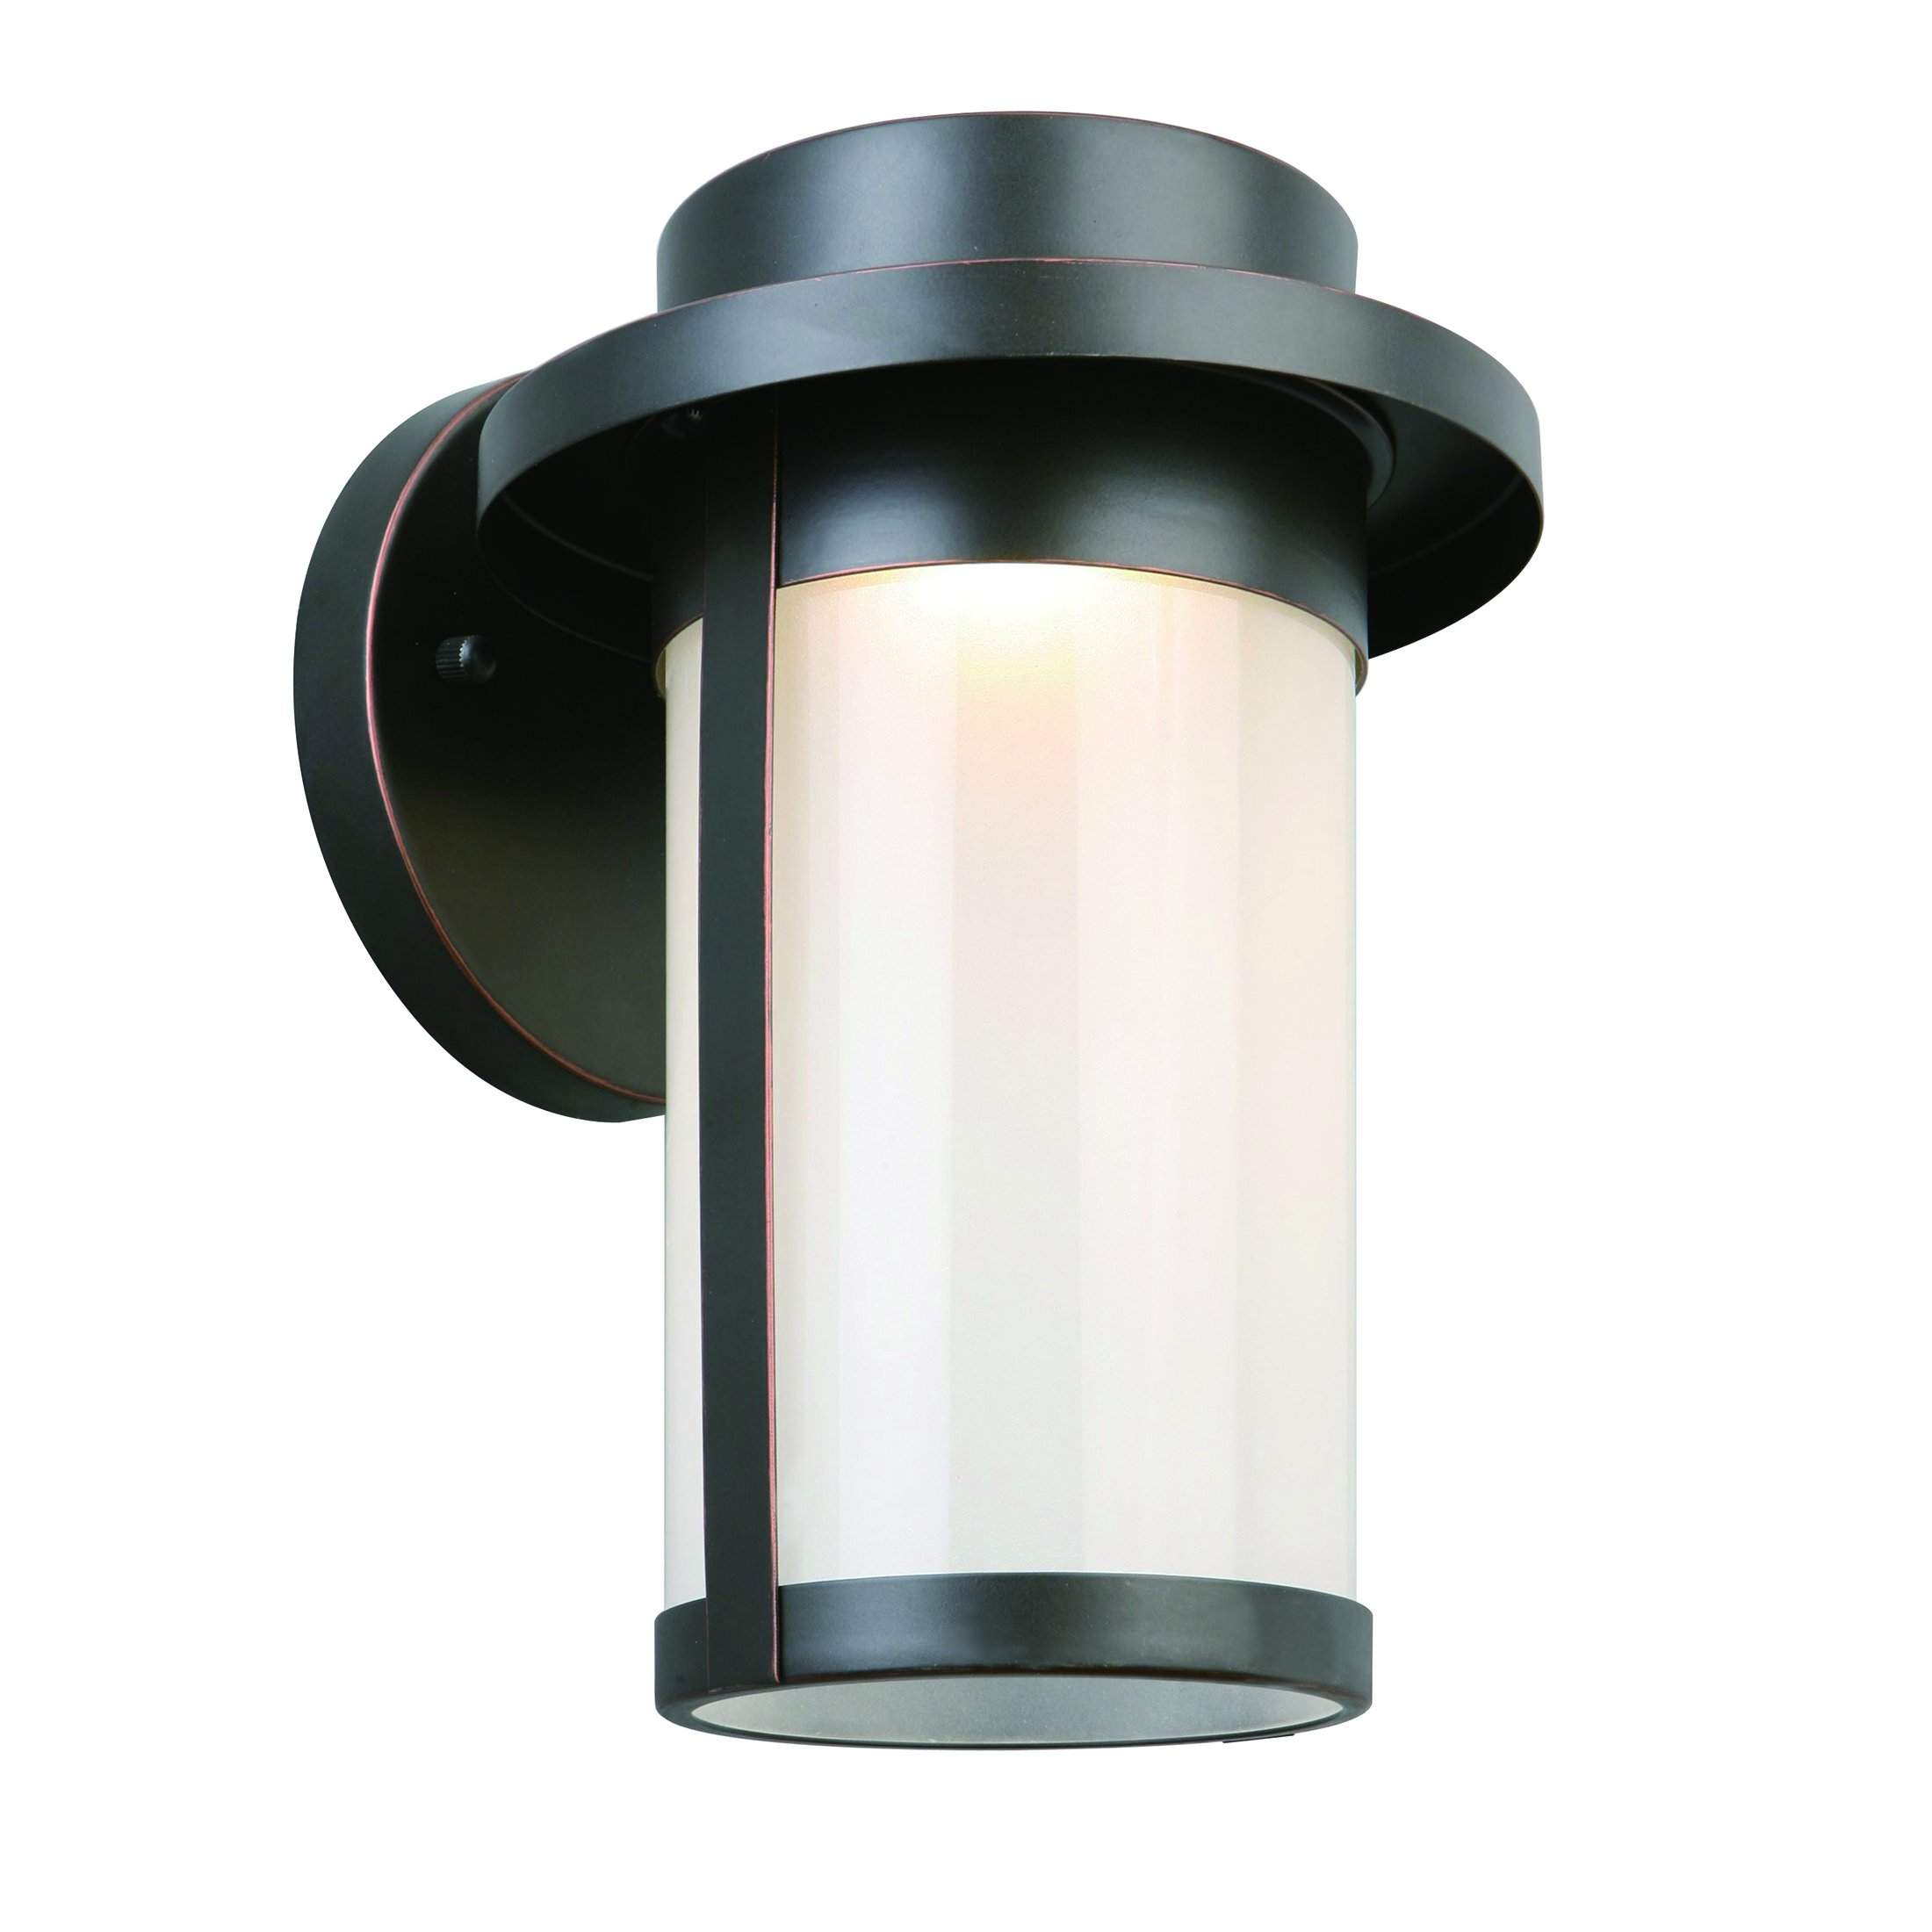 Design House 180331 Longmont LED Outdoor Wall Light, Oil Rubbed Bronze